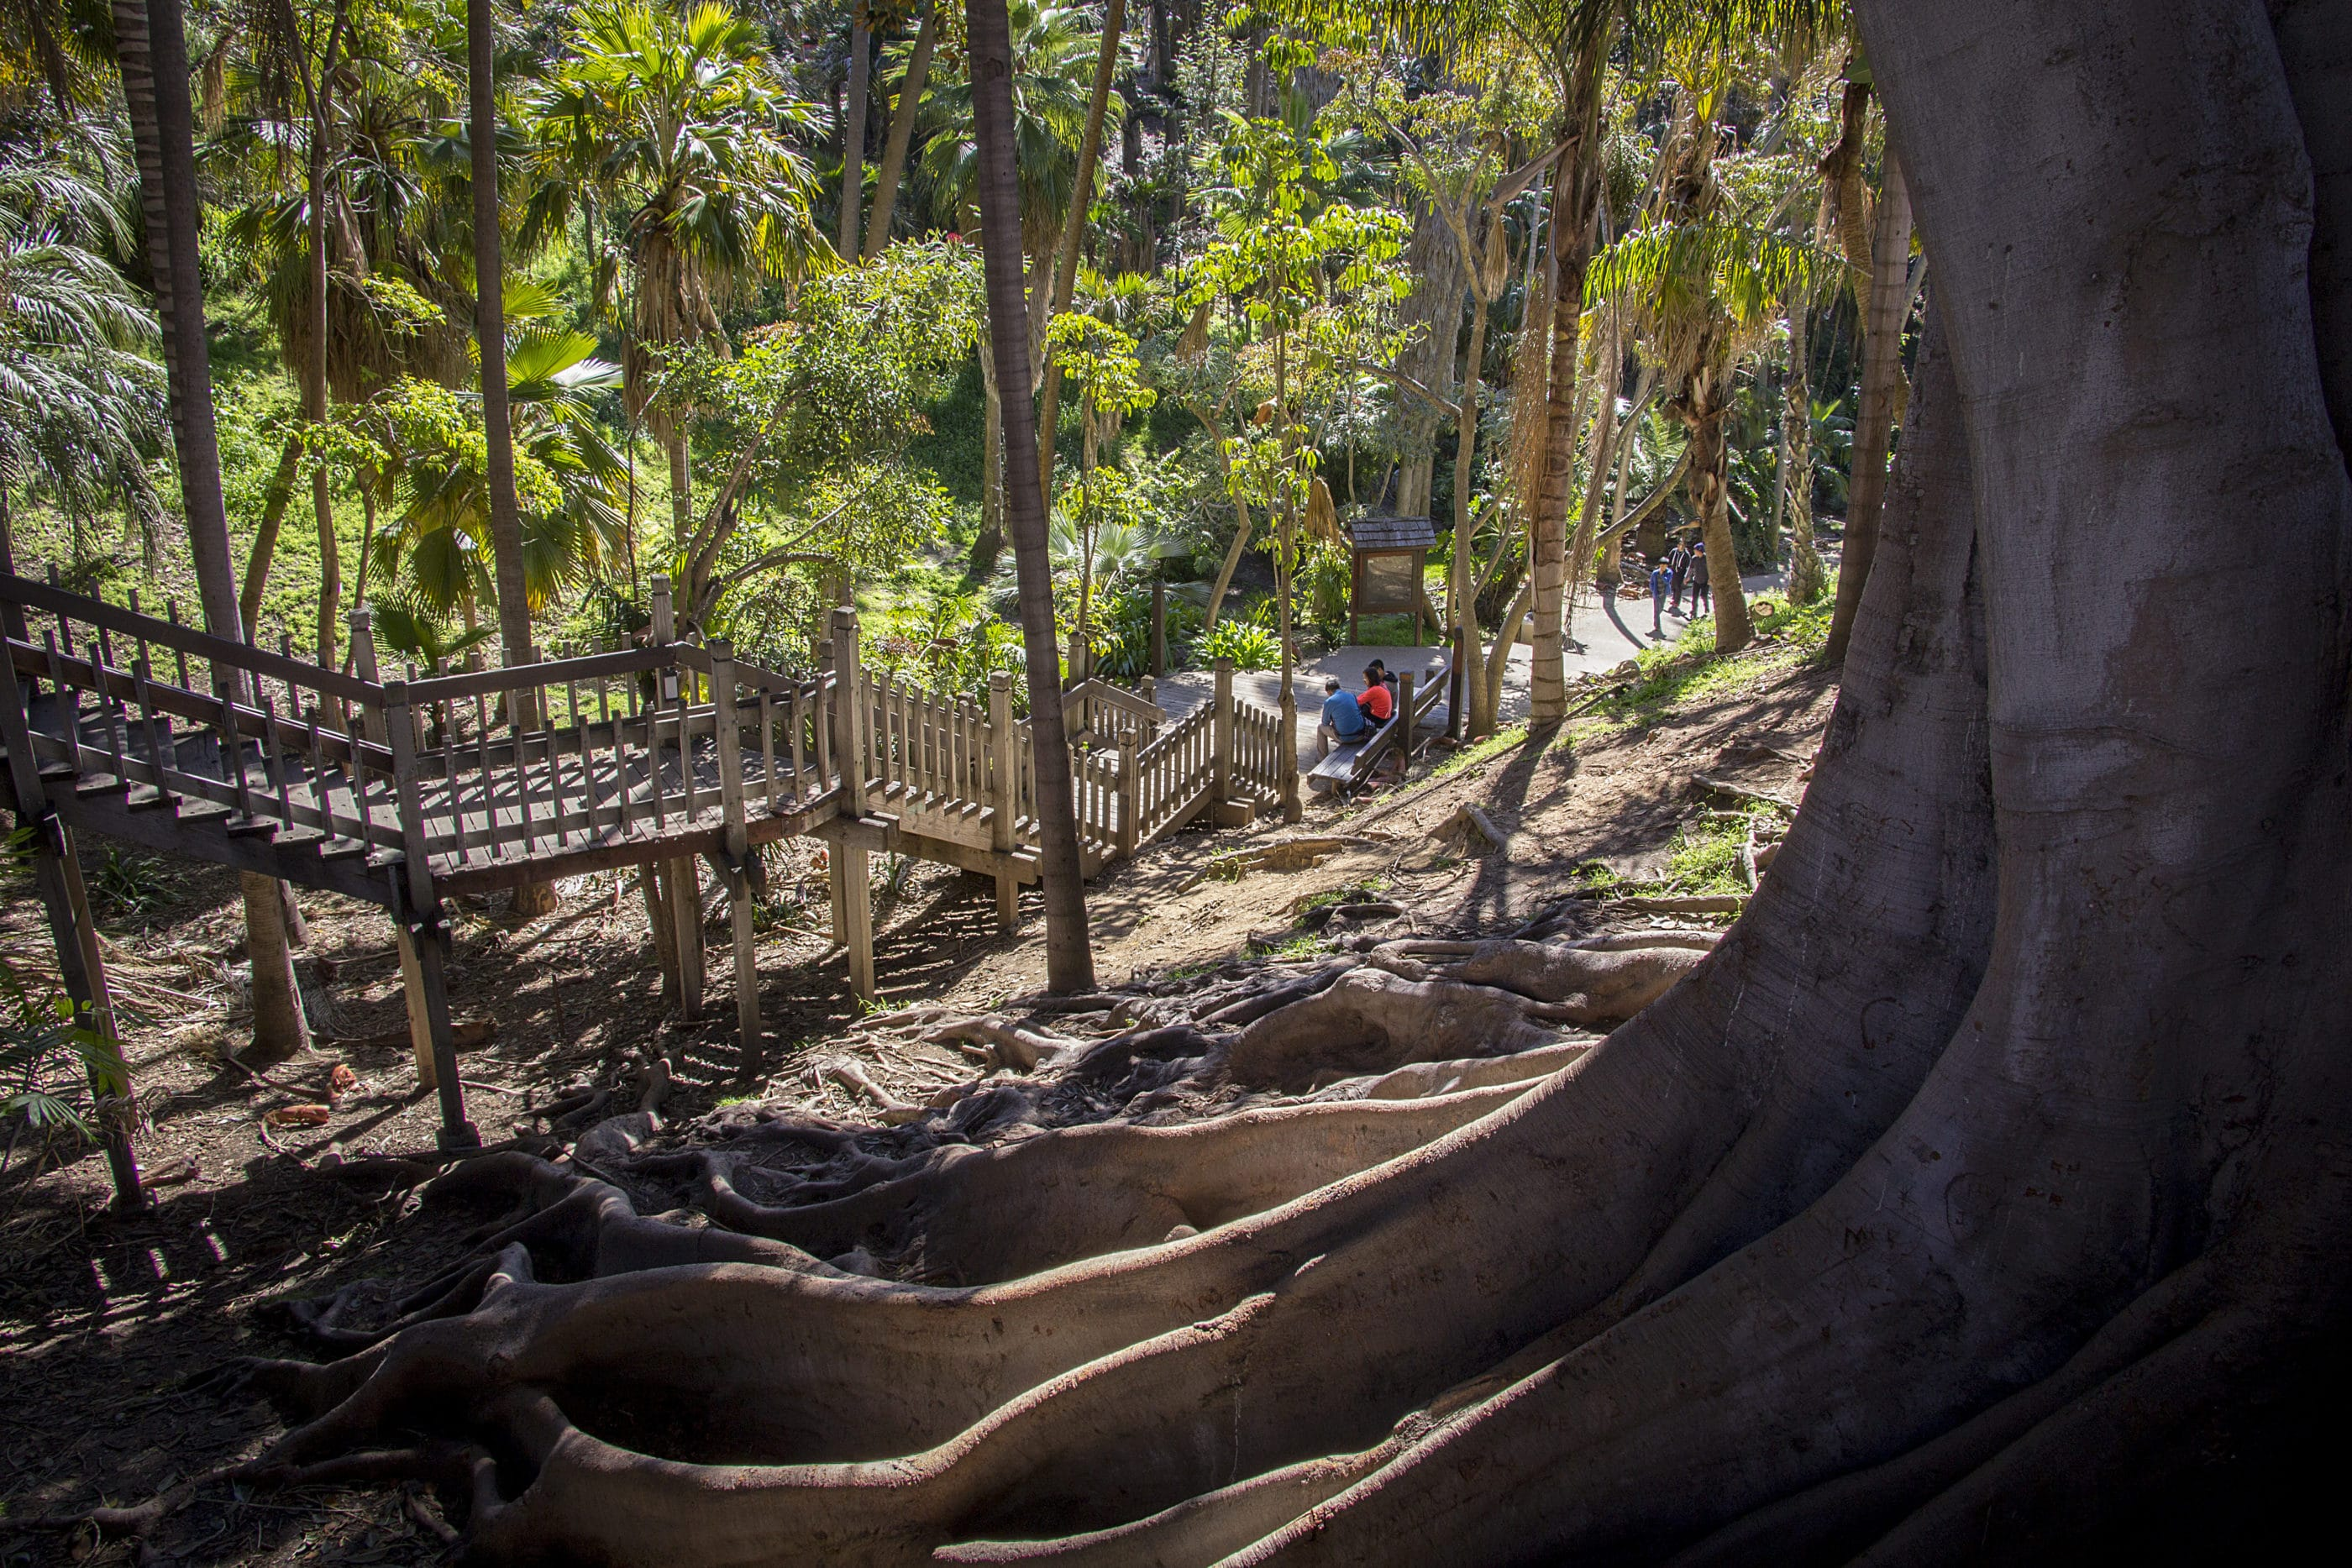 Things to do in Balboa Park: Hike Palm Canyon